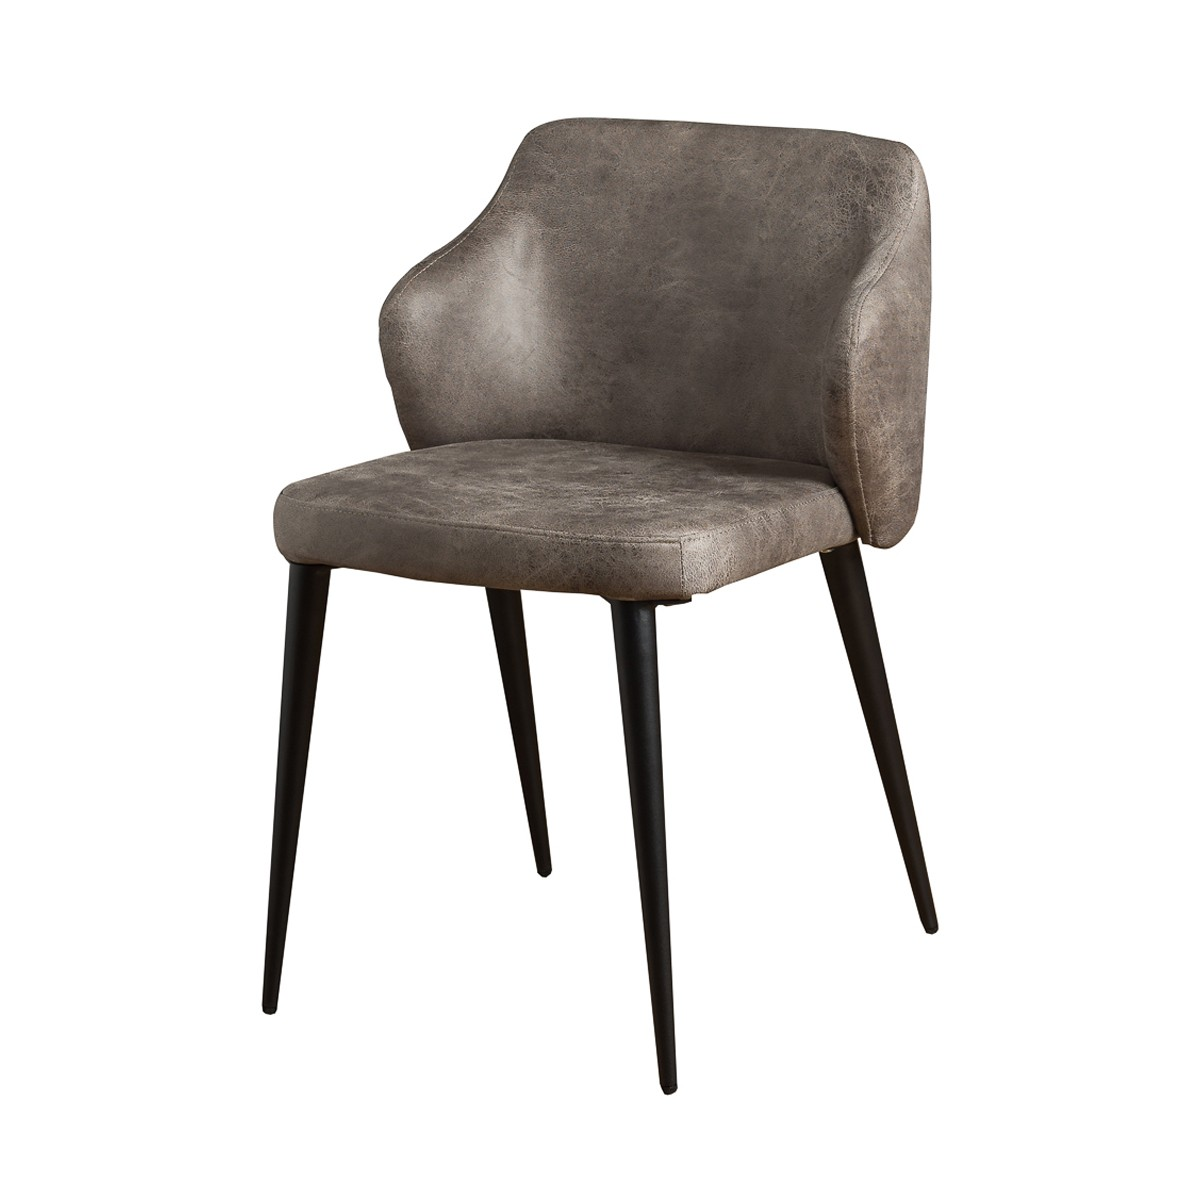 Chip - Vintage Grey Chair